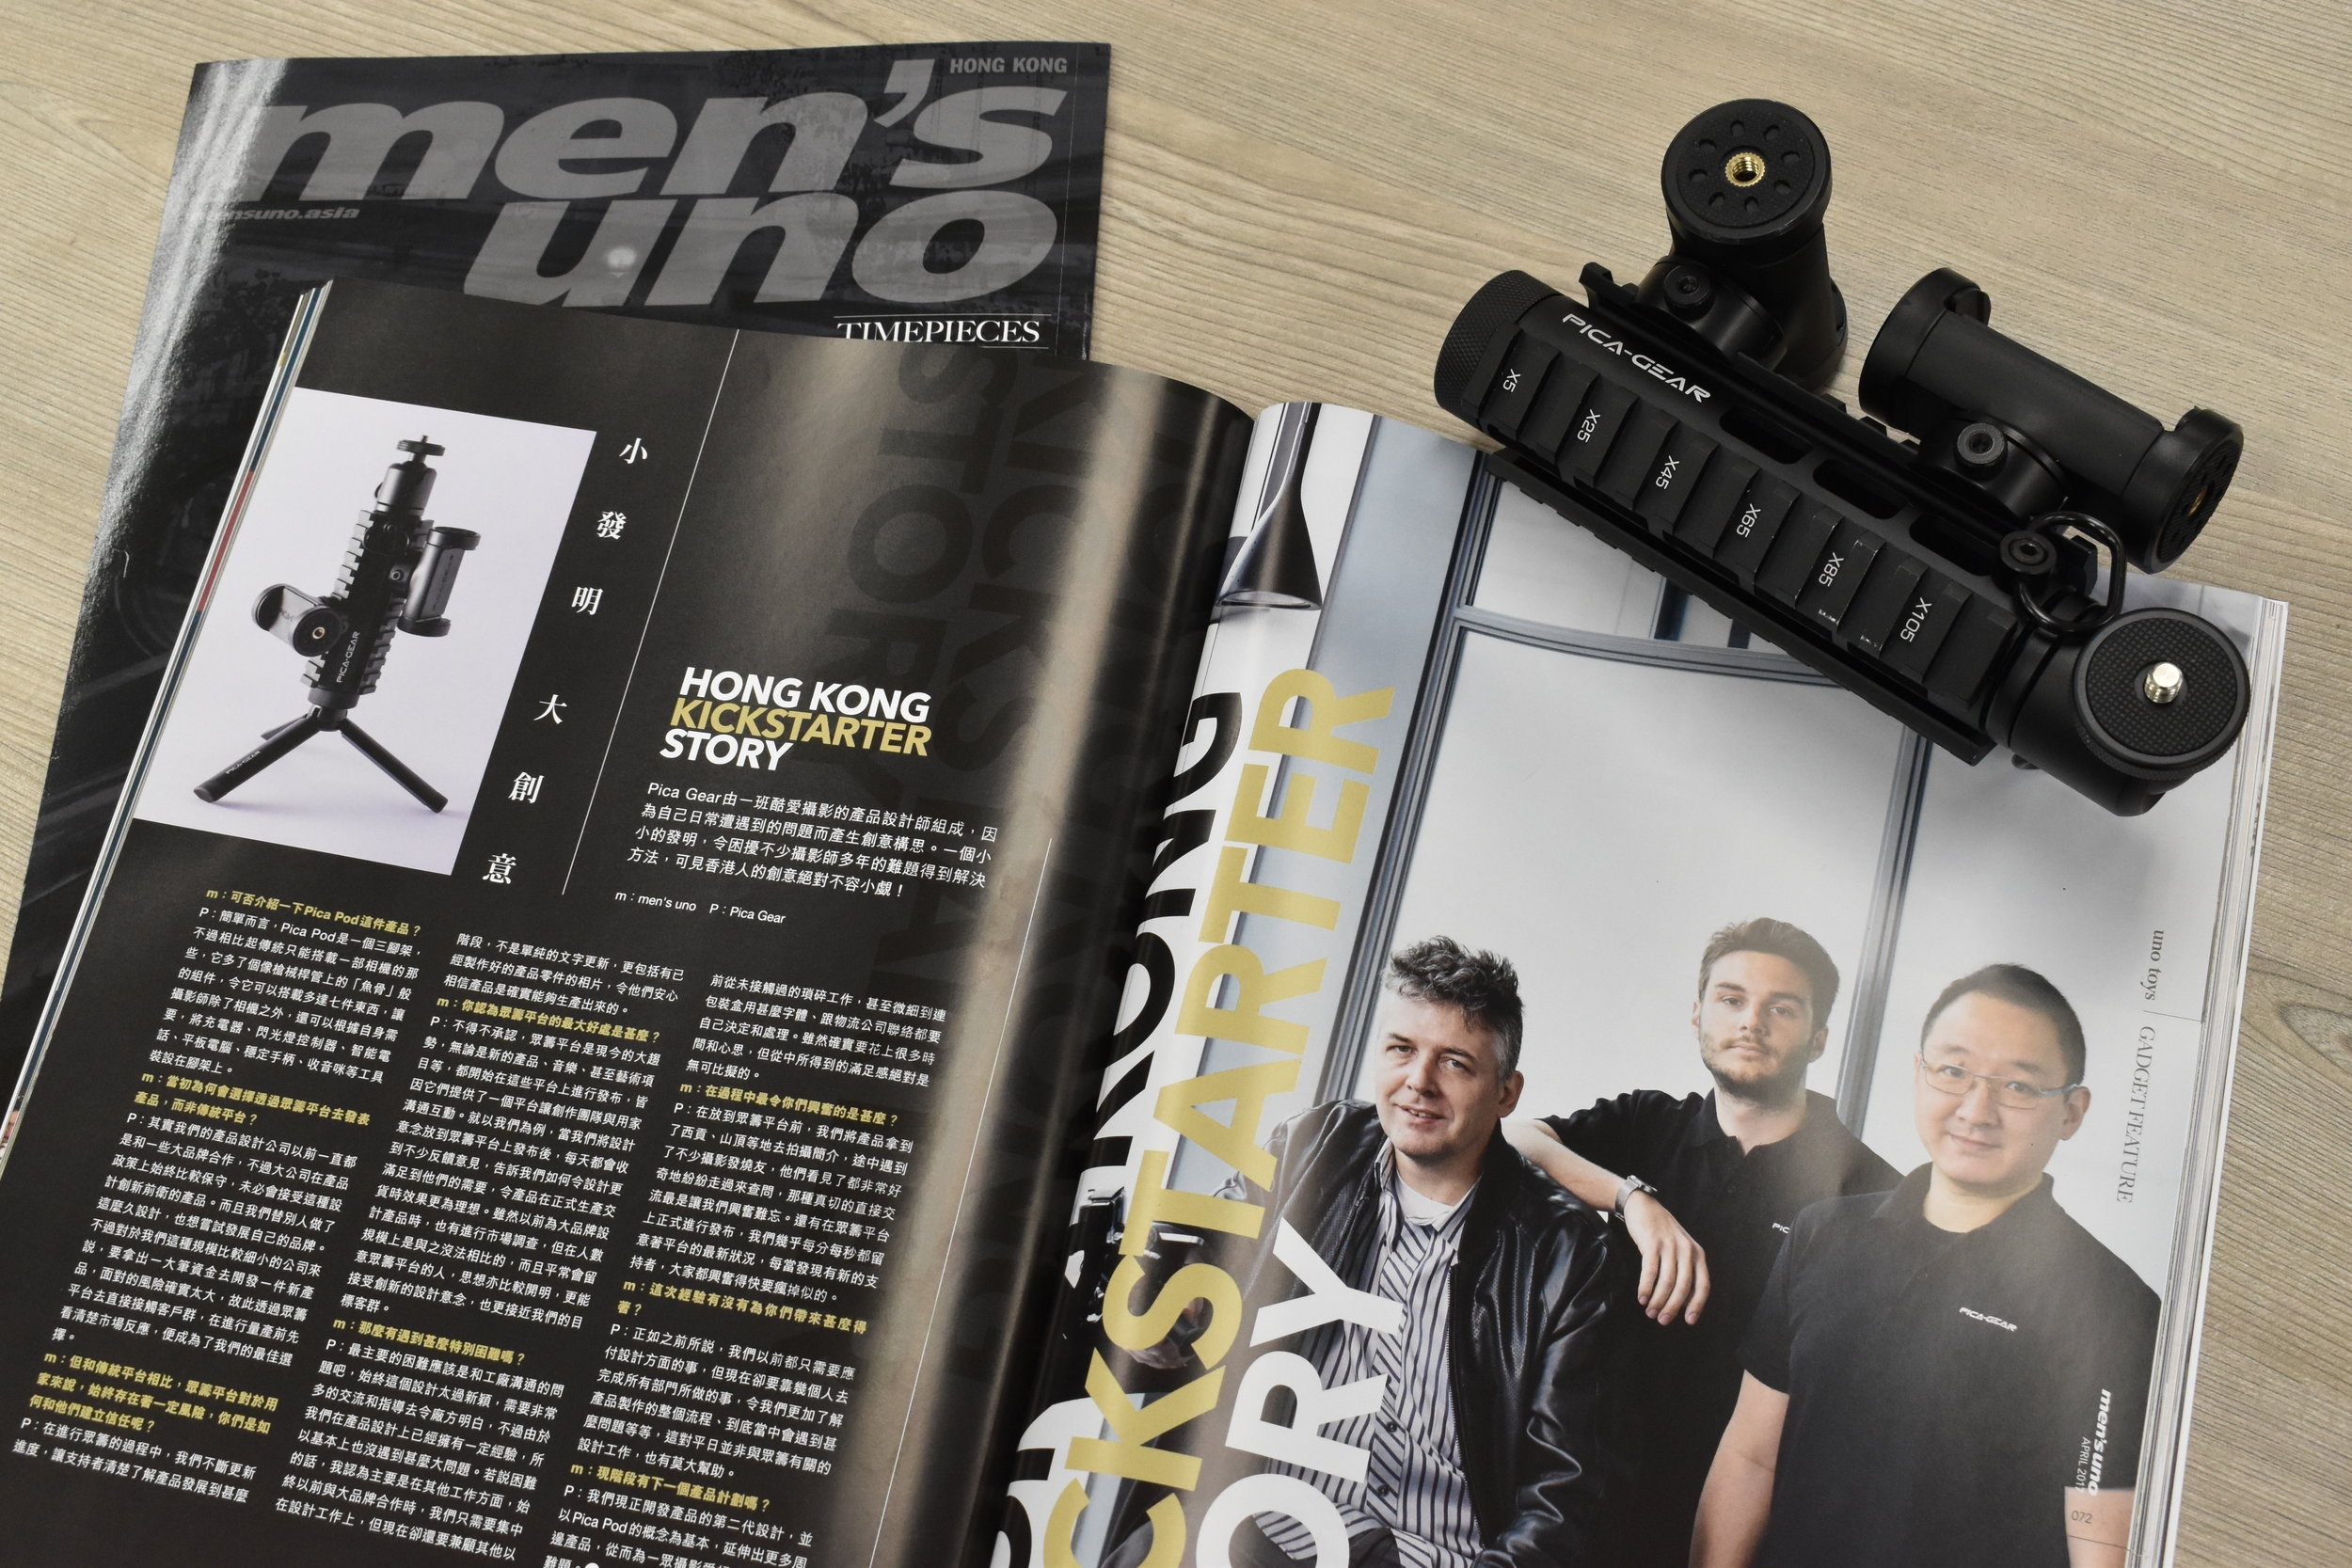 Men's Uno Magazine releases their article on Pica-Gear in the April17's issue - don't miss it!